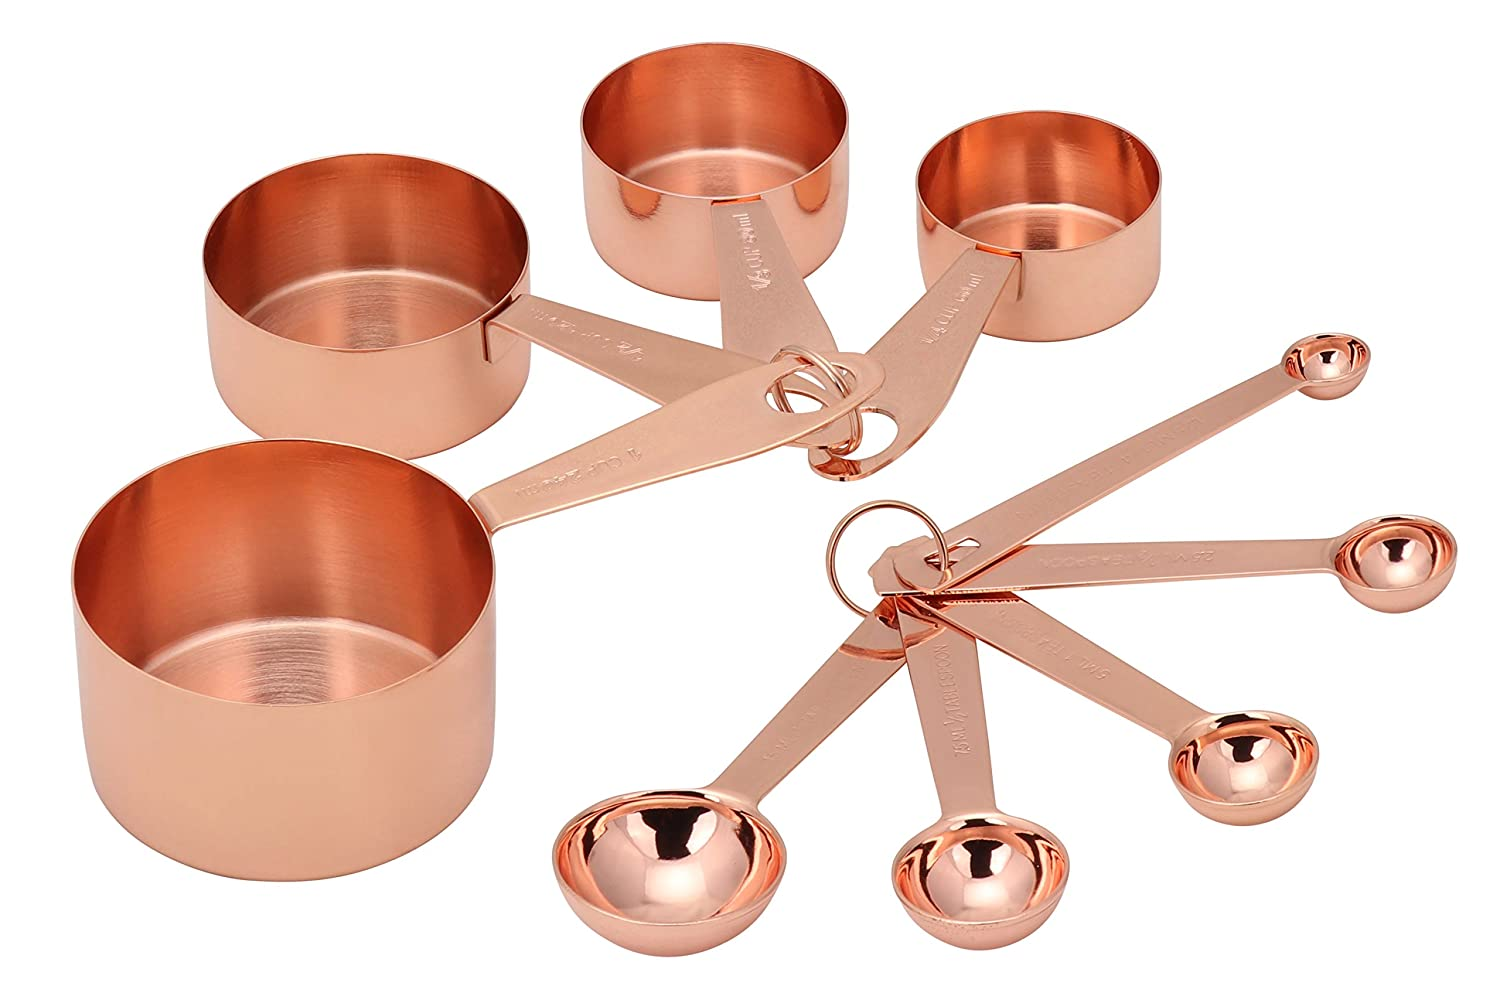 Copper Measuring Cups & Spoons 9pc set by Steelware Central | Stainless Steel Copper Plated | Rose Gold | Engraved Markings| Stack-able nesting baking/cooking kitchen tool |Perfect Gift